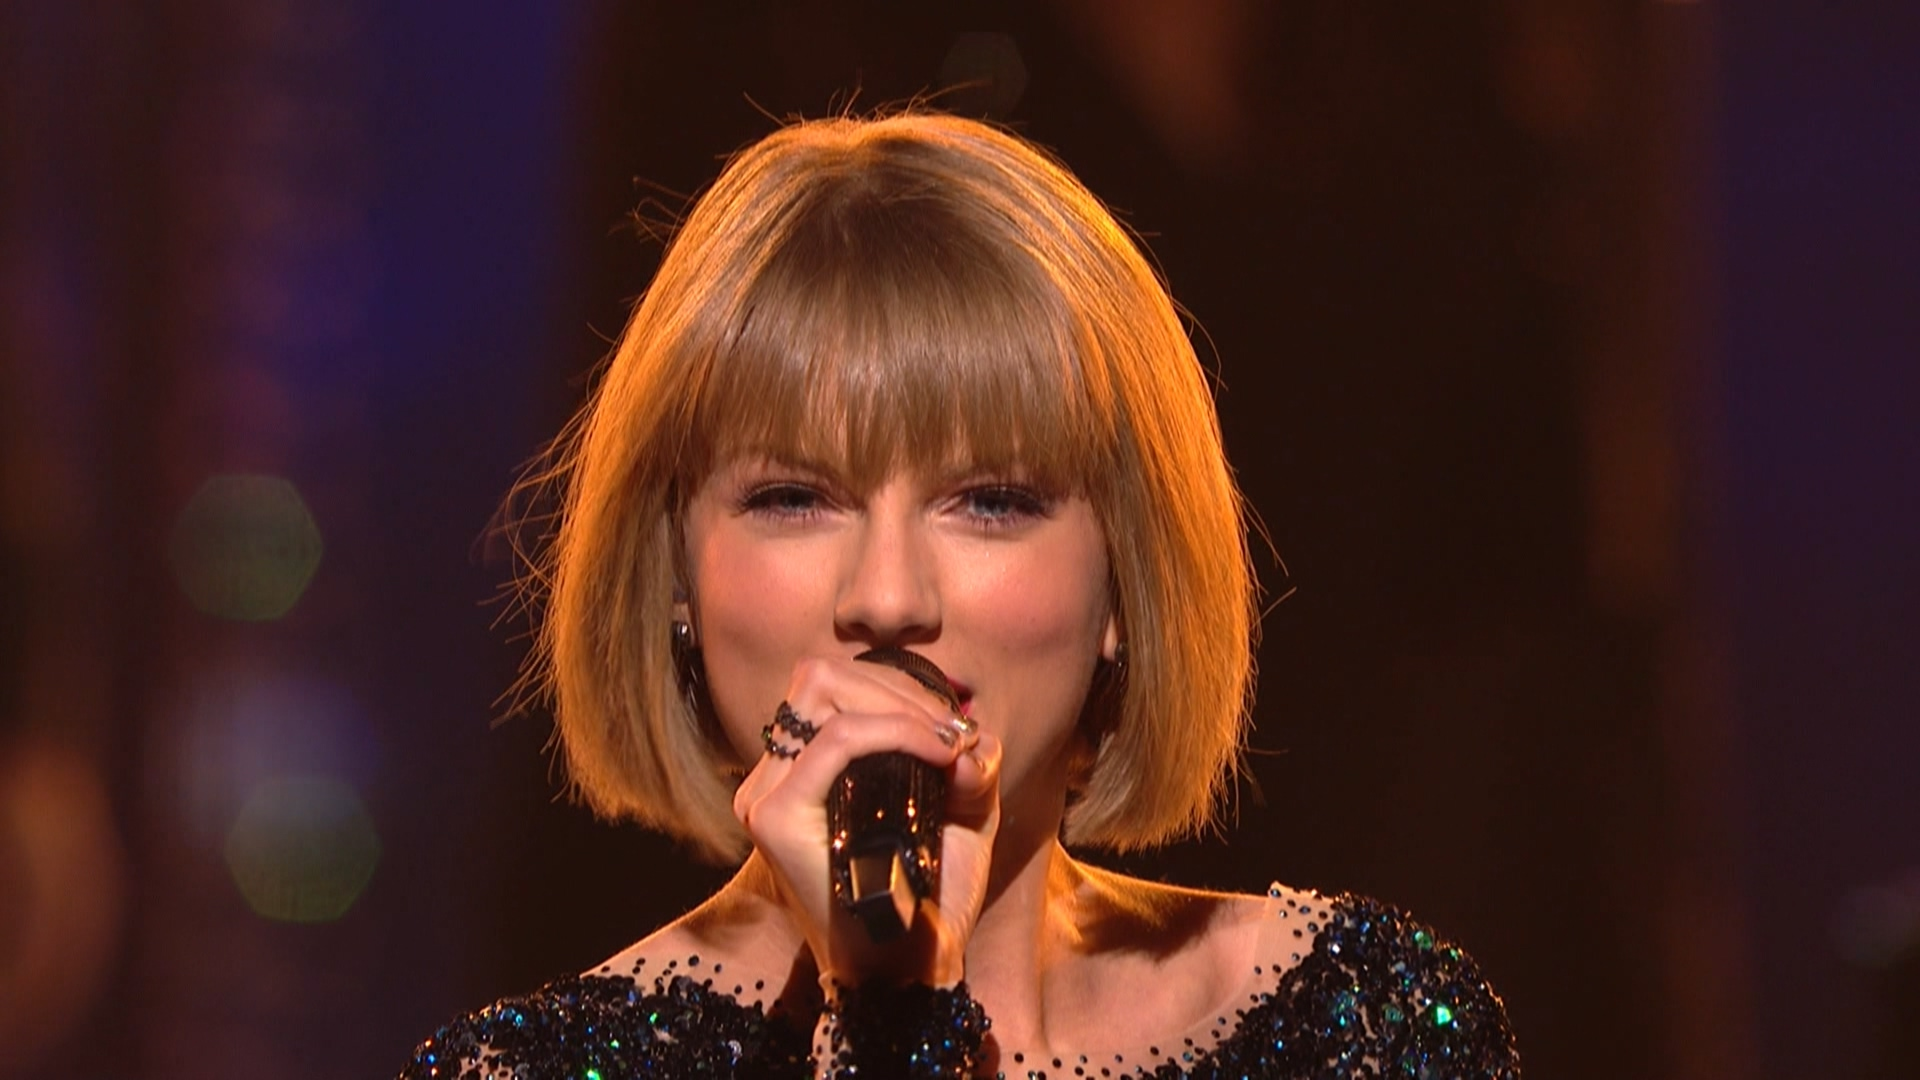 Taylor Swift - Out of the Woods  (Grammy Awards,feb. 15,2016).ts_20160303_080812.421.jpg